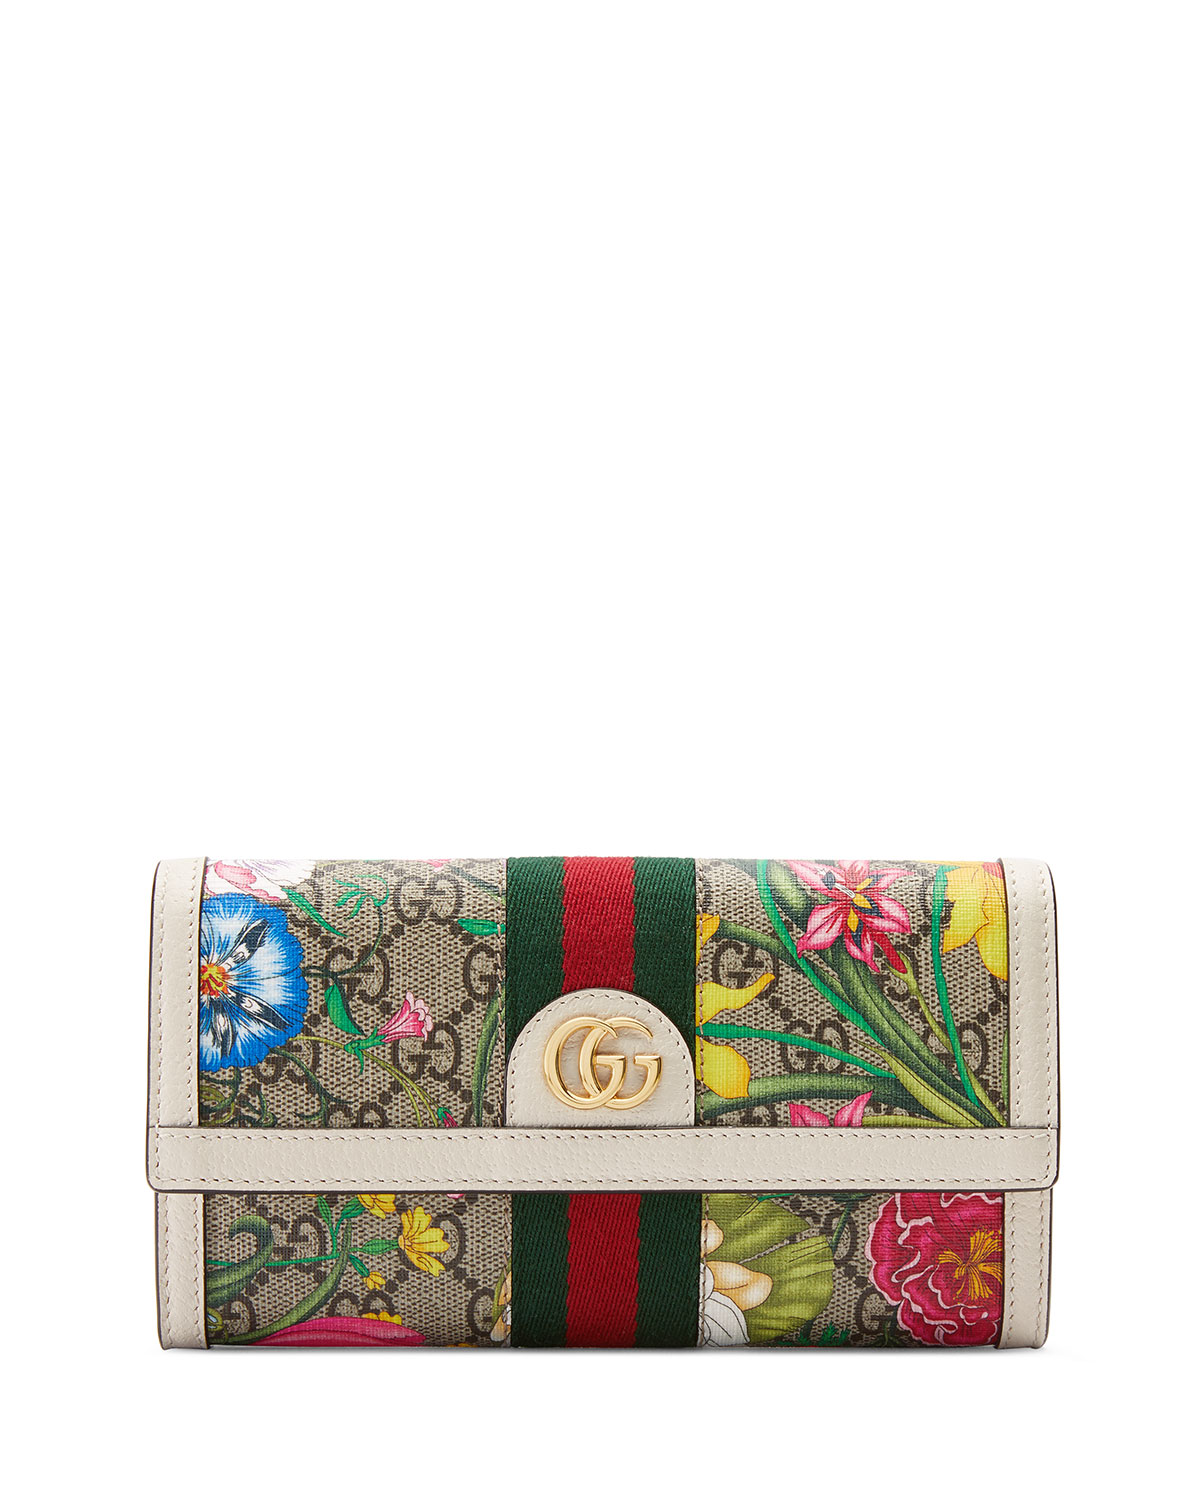 Gucci Wallets OPHIDIA GG FLORA FLAP CONTINENTAL WALLET